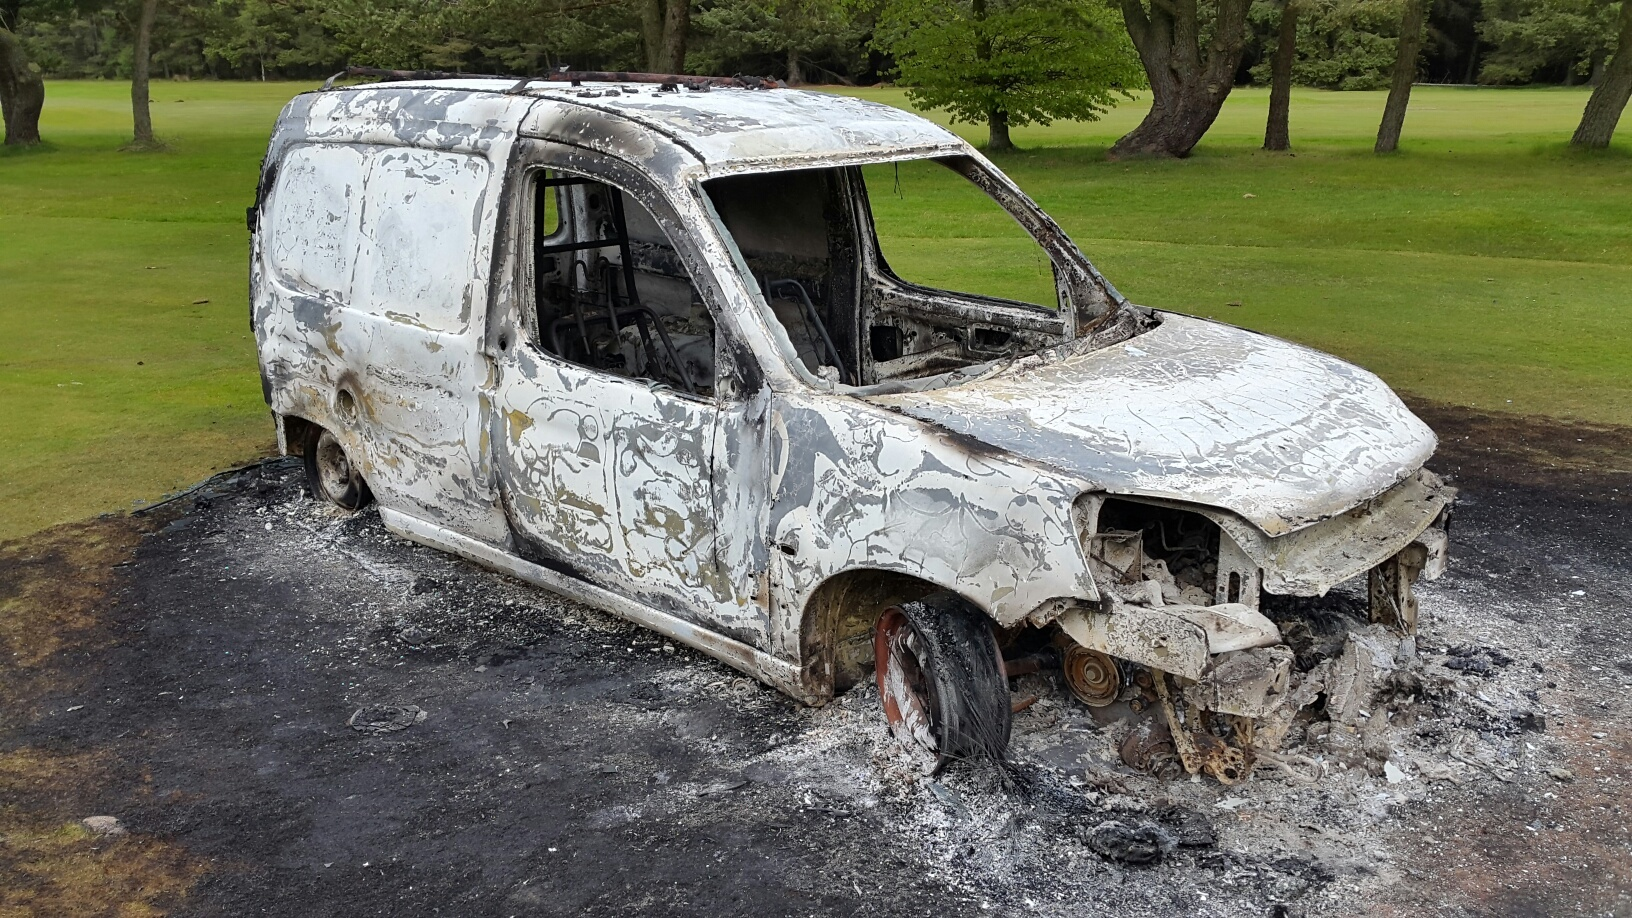 The car was at Hazlehead Golf Club at the time of the fire